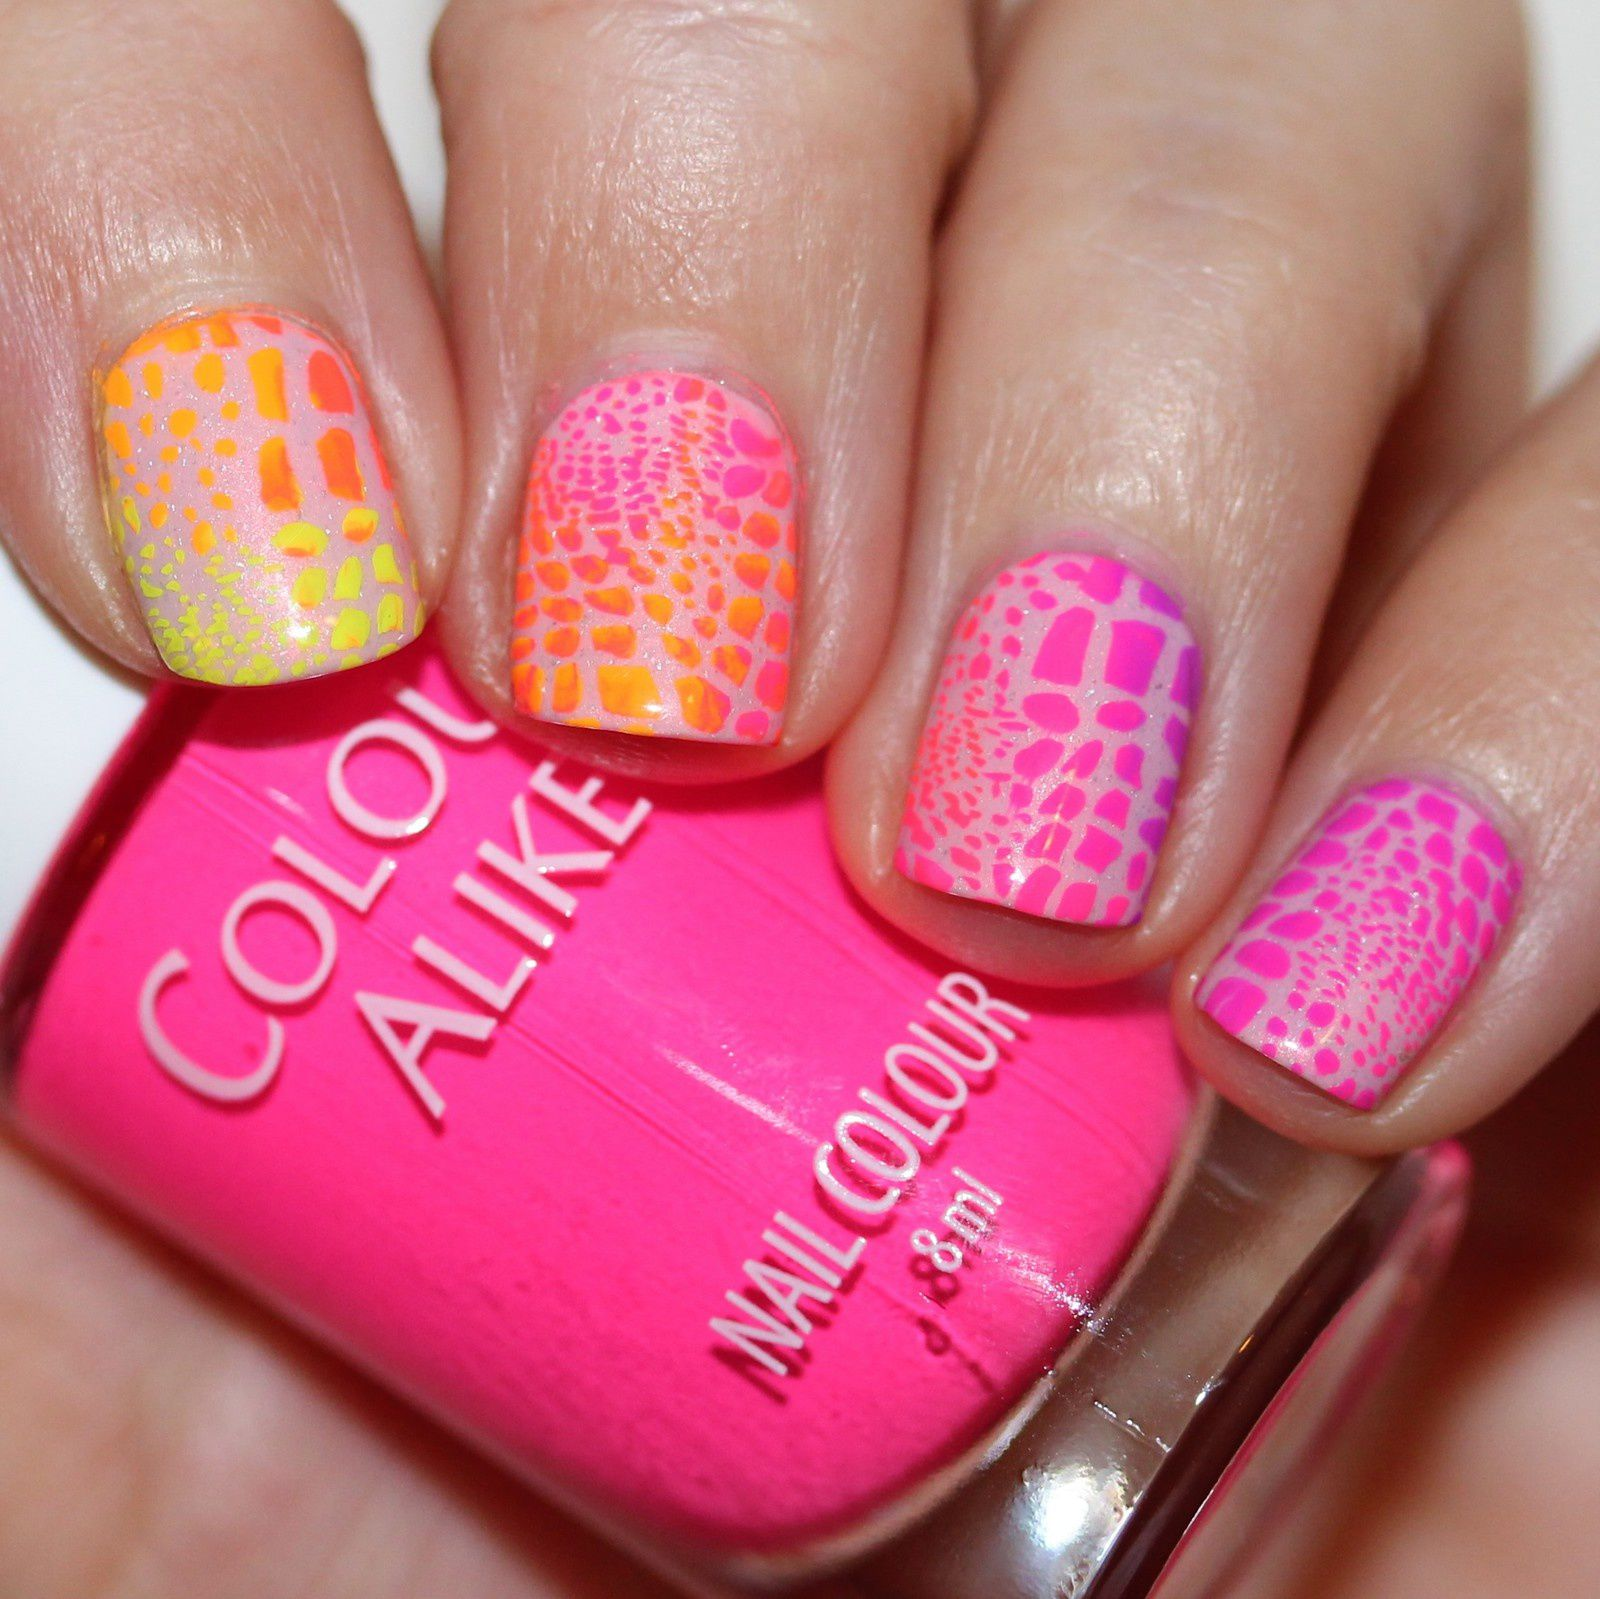 Essie Protein Base Coat / Potion Polish Afterglow / Poshe Top Coat / Moyou London Pro Collection XL 05 plate and Color Alike Neon Power collection / Konad Top Coat